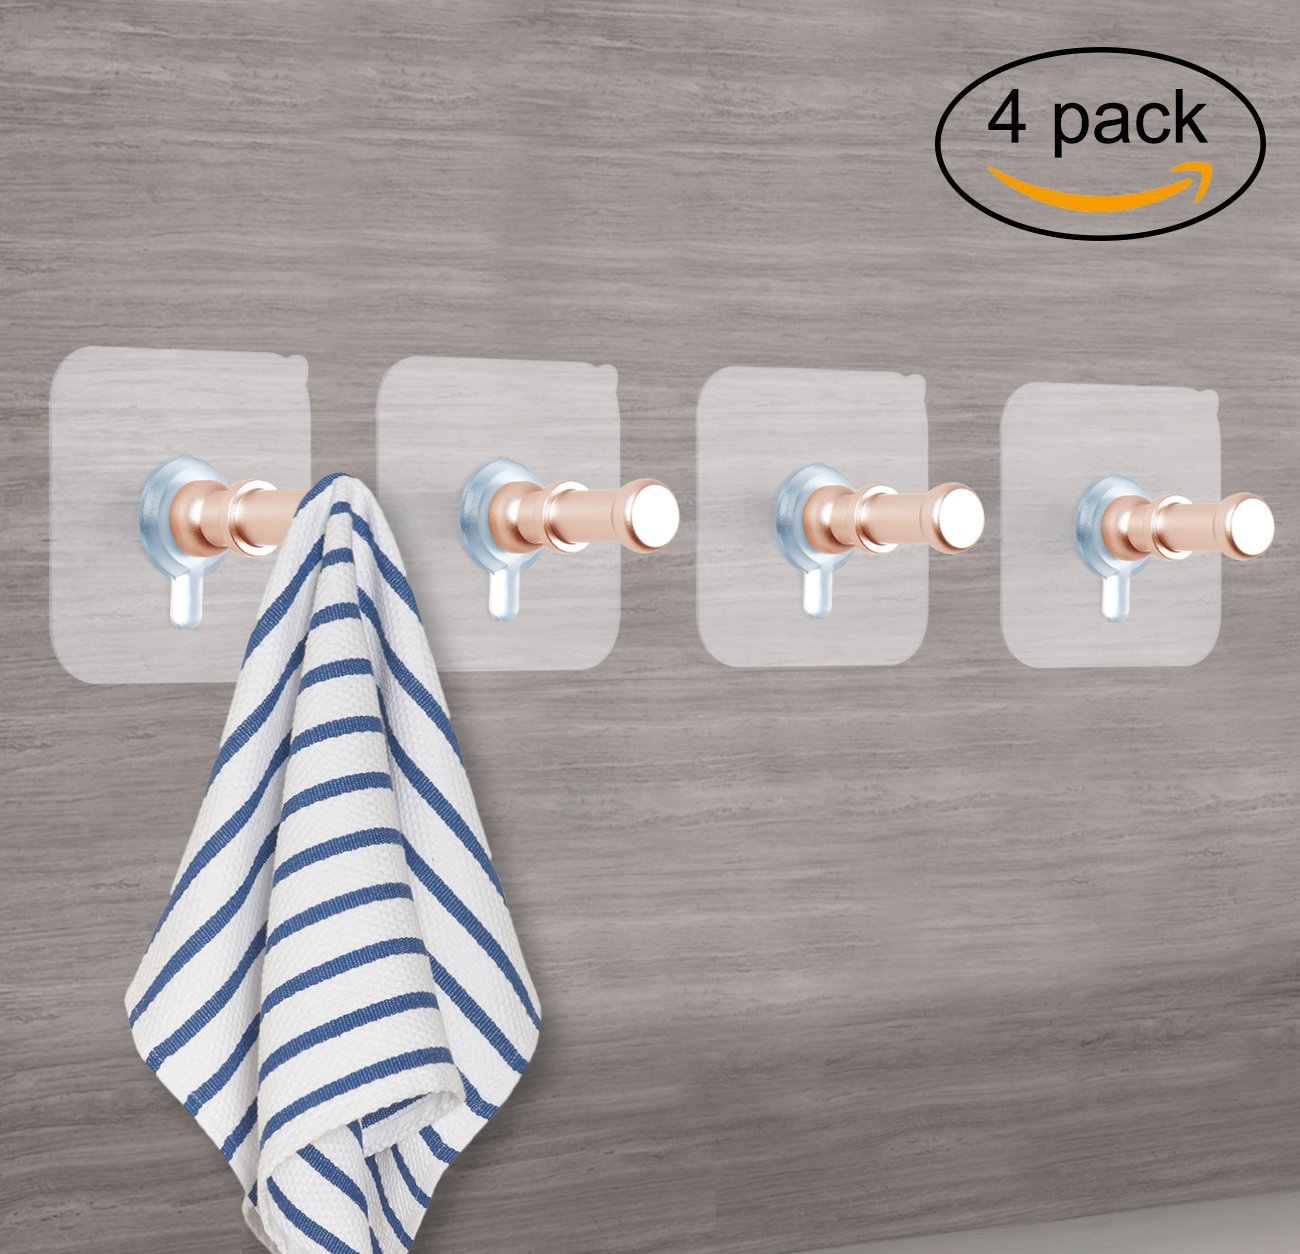 Sendida Wall Mounted Adhesive Hooks - 4 Pcs Aluminum Wall Hooks Nails Free No Drills Screw in Hooks for Hanging Hat Closet, Coat, Towel Hooks - Gold